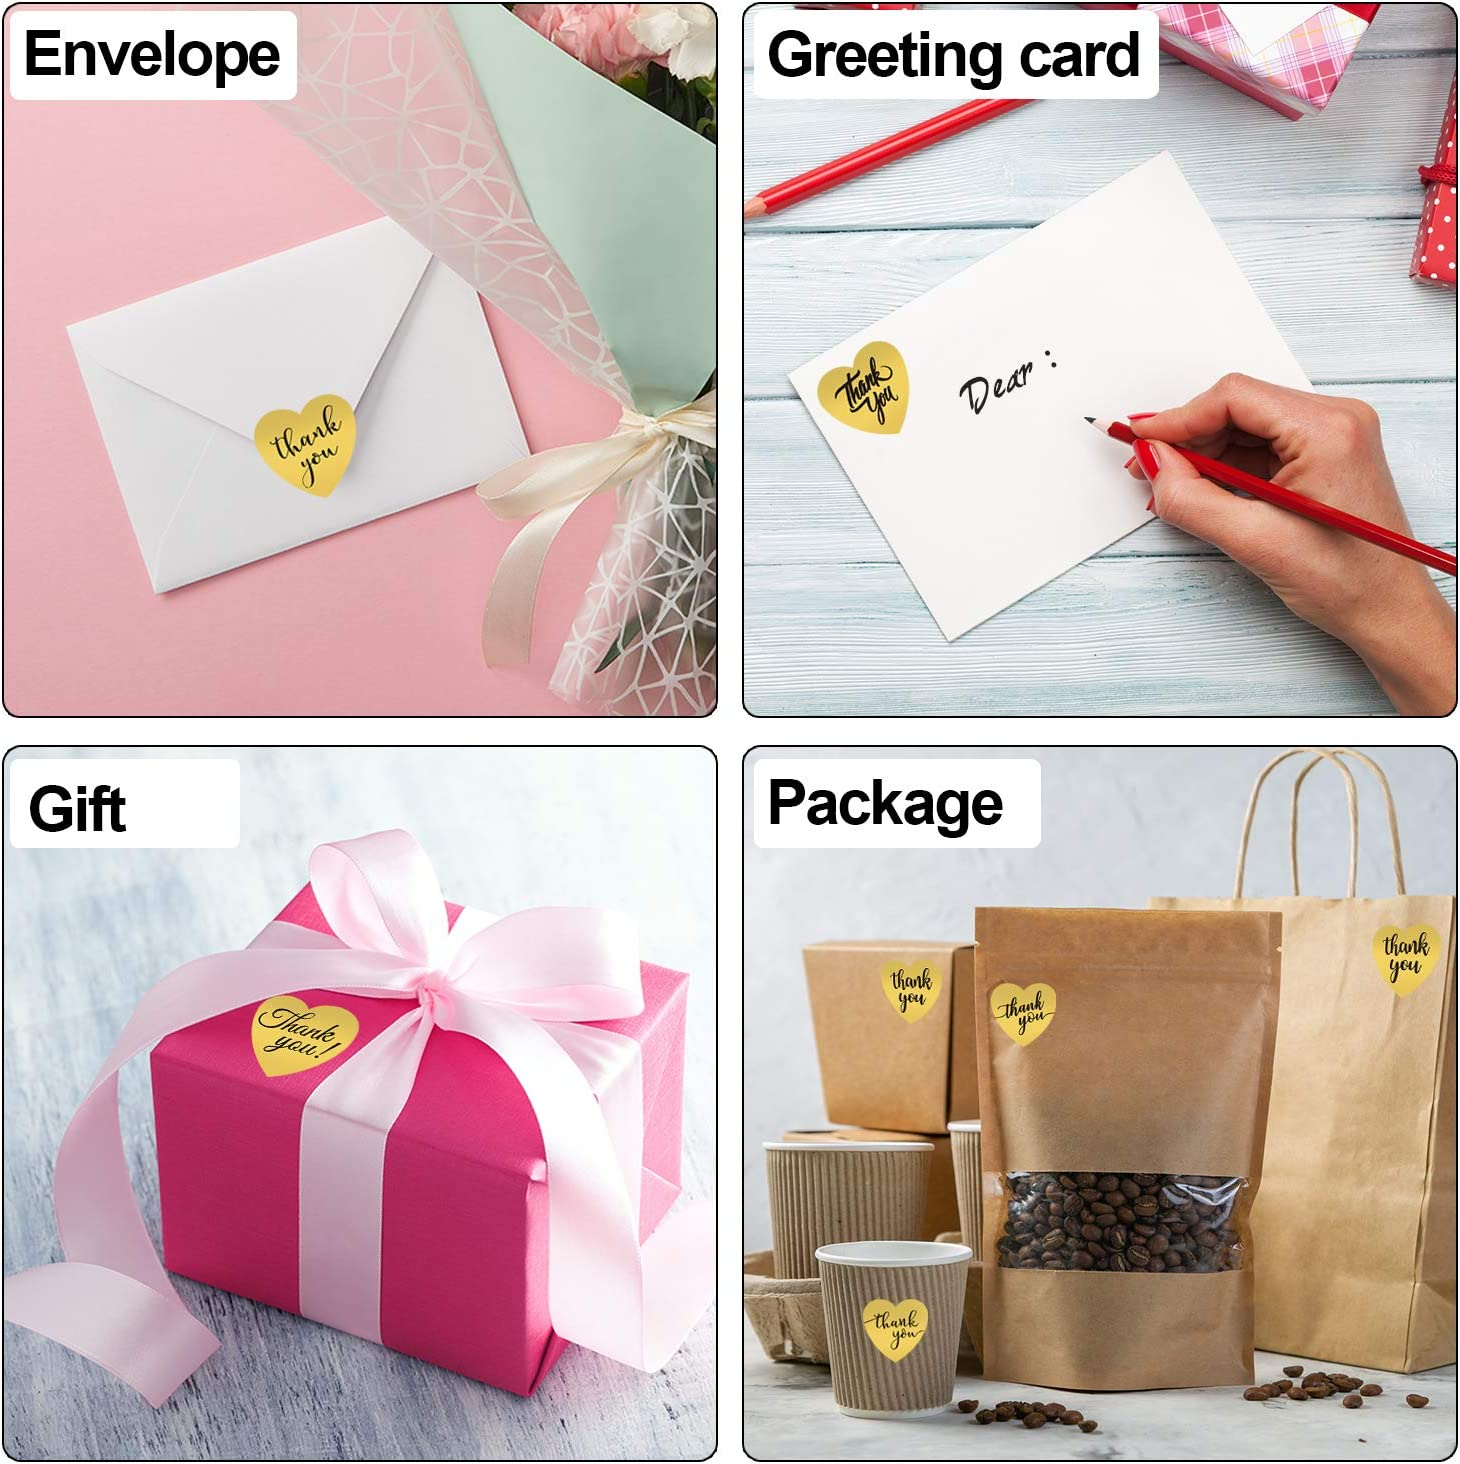 BQTQ 2000 Pcs Thank You Sticker Heart Shape 4 Roll Thank You Stickers Roll 1 Inch Gold Foil Stickers Label for Business Packaging Packages 500 per Roll Thank You Cards Wedding Gifts